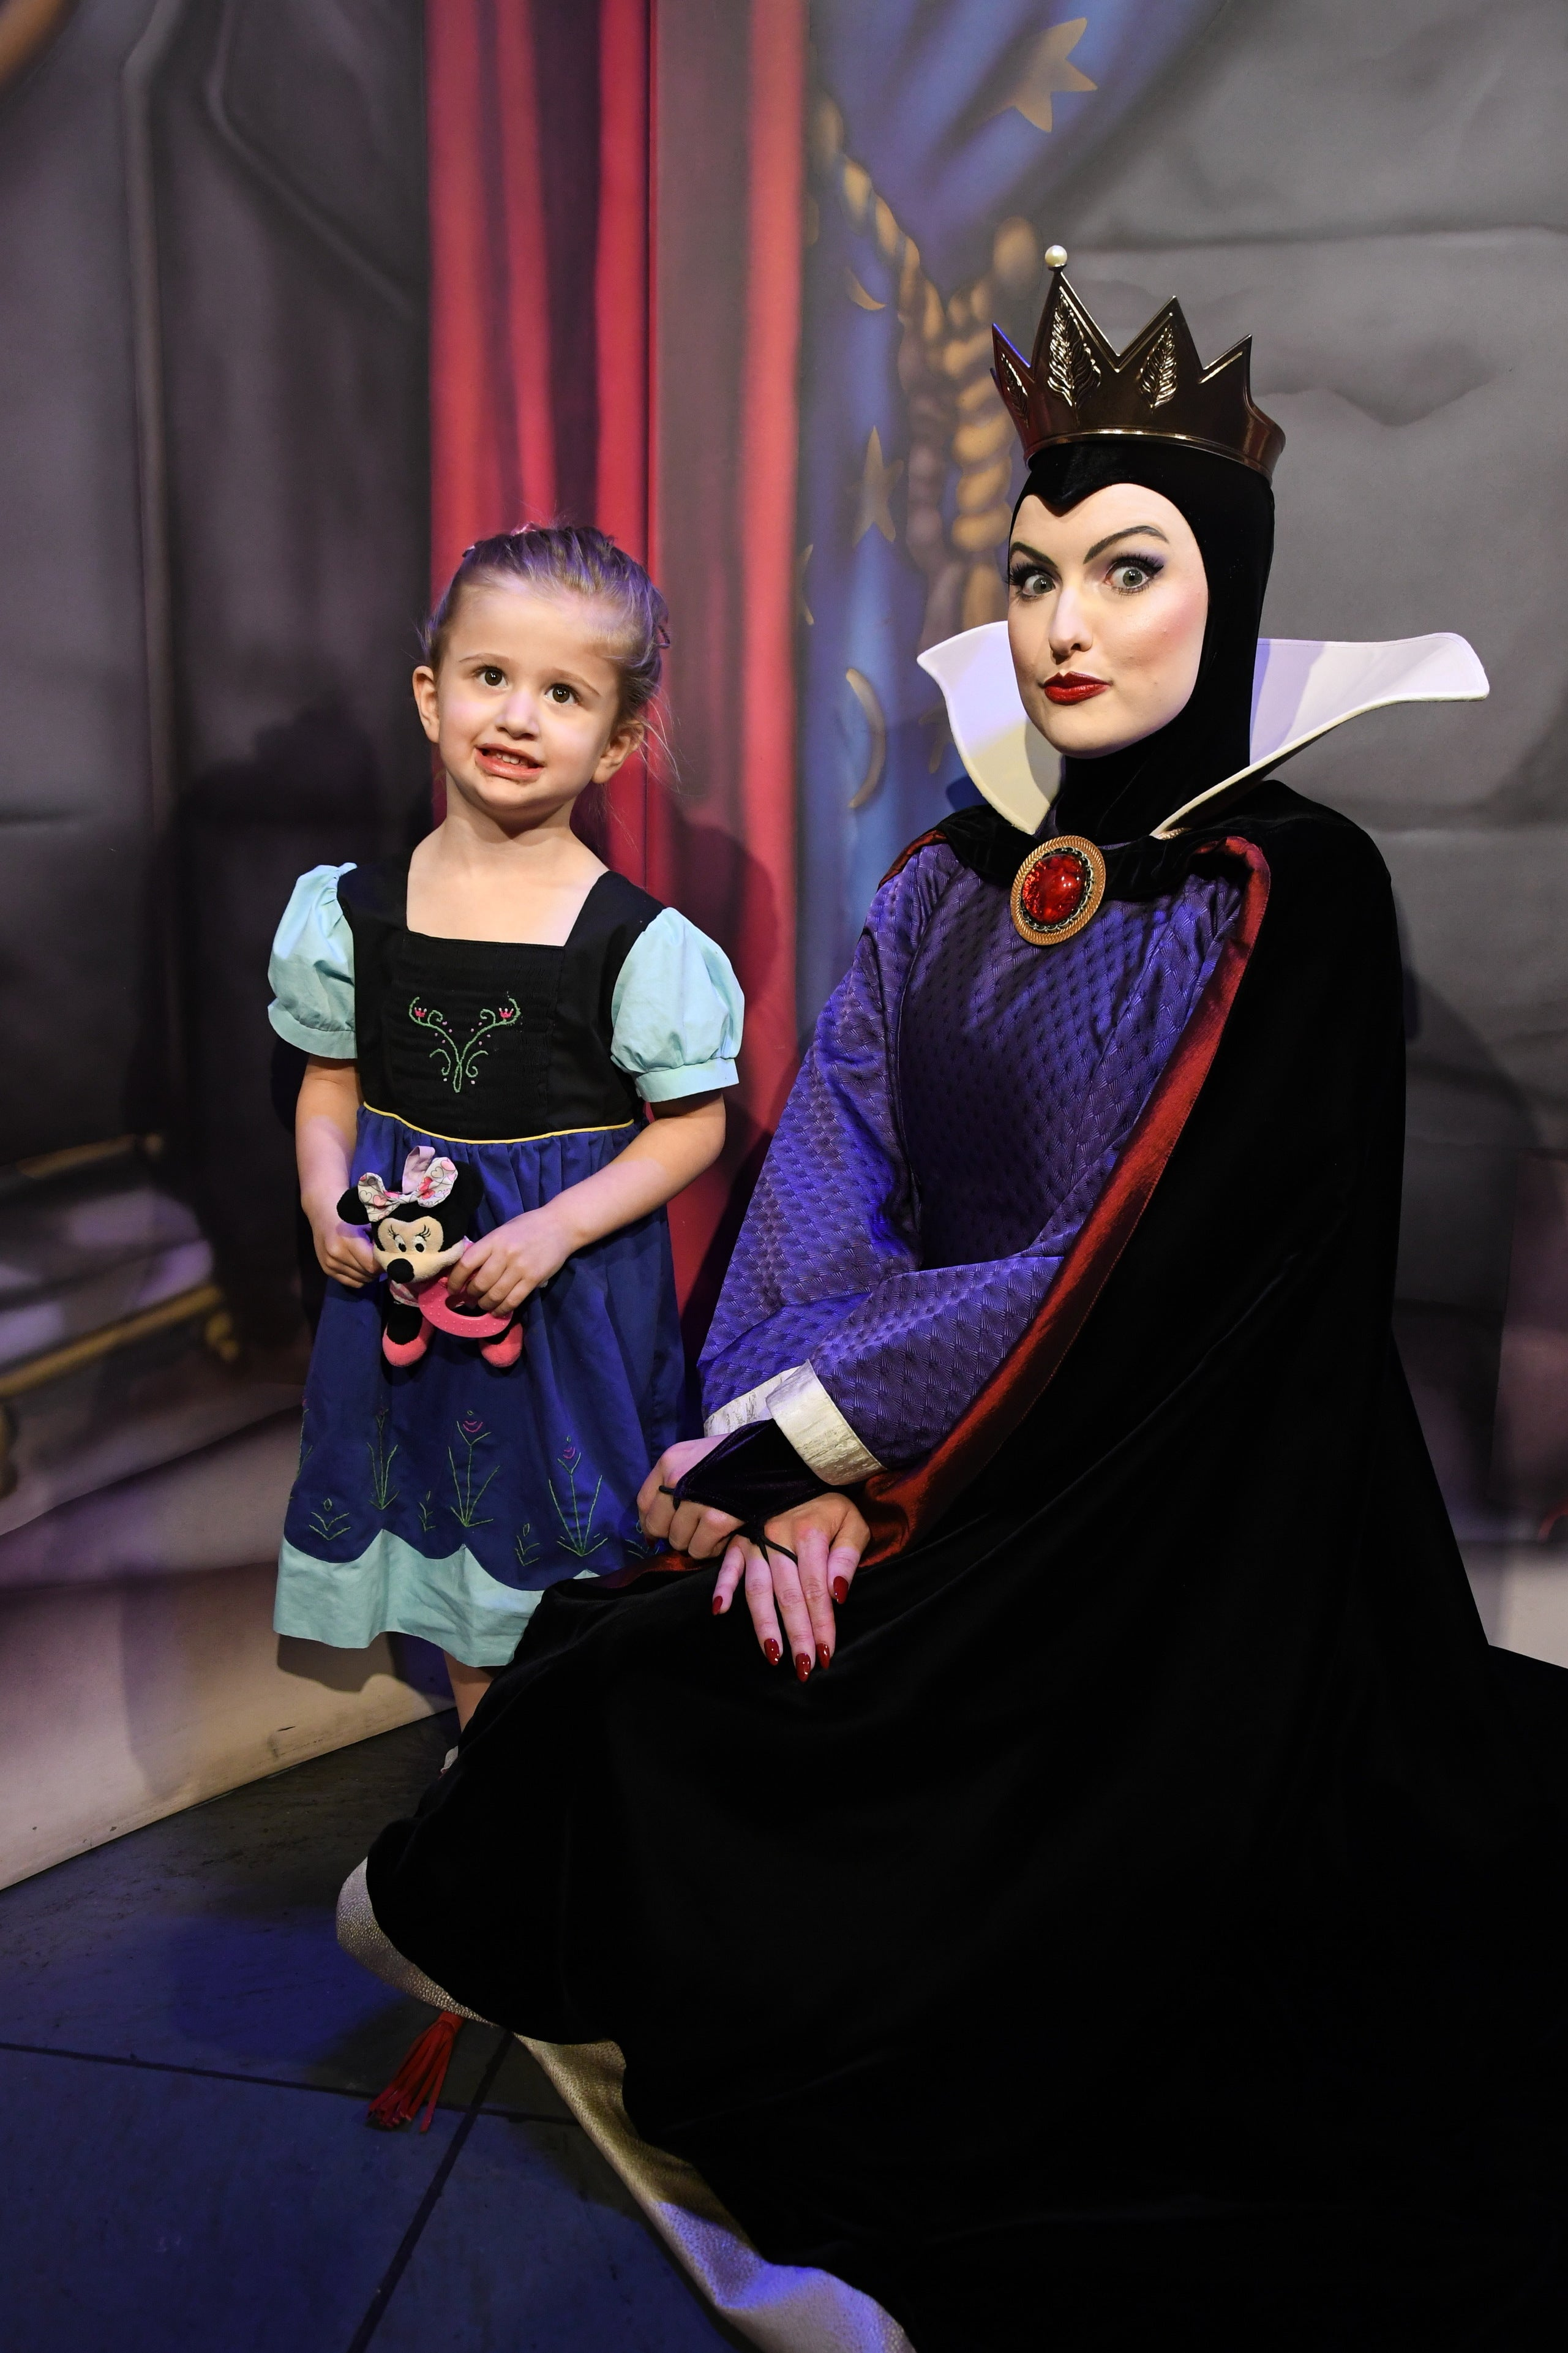 Evil Queen at Artists Point